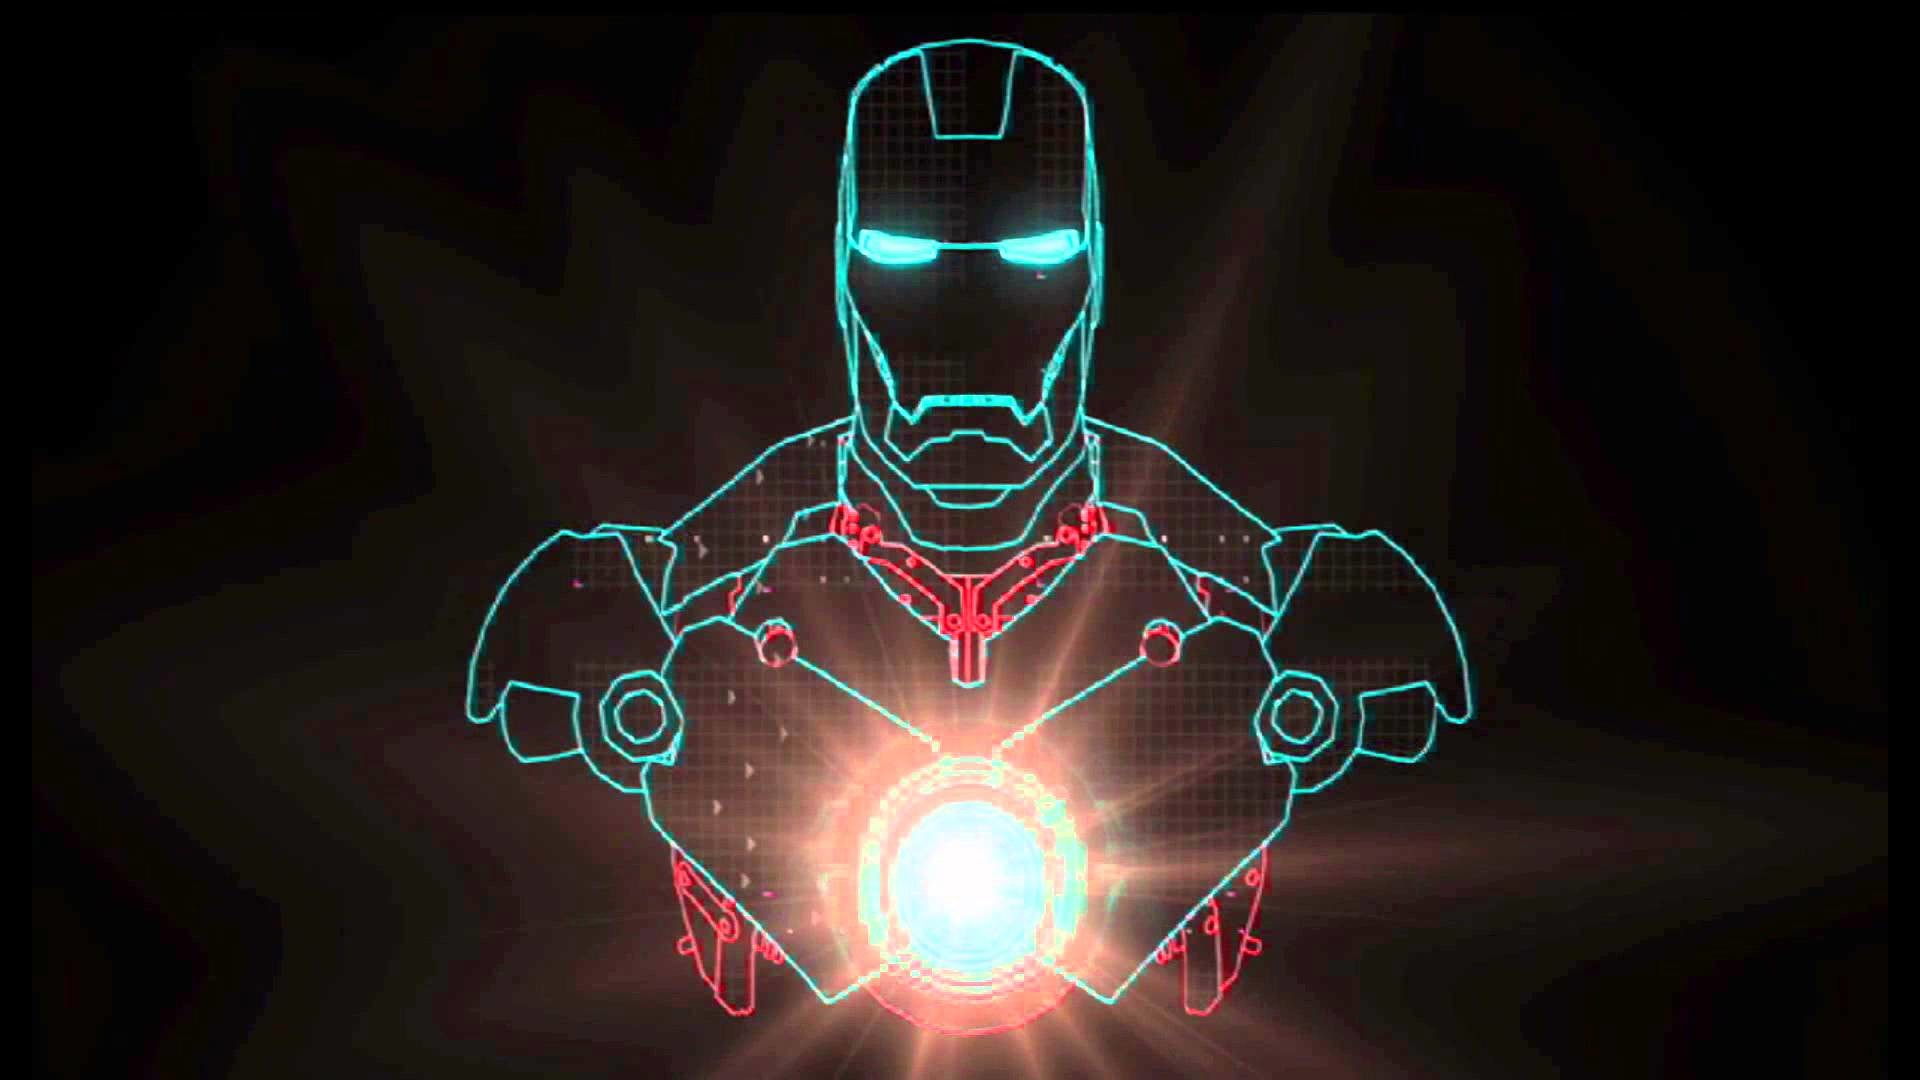 Iron man arc reactor wallpaper iphone